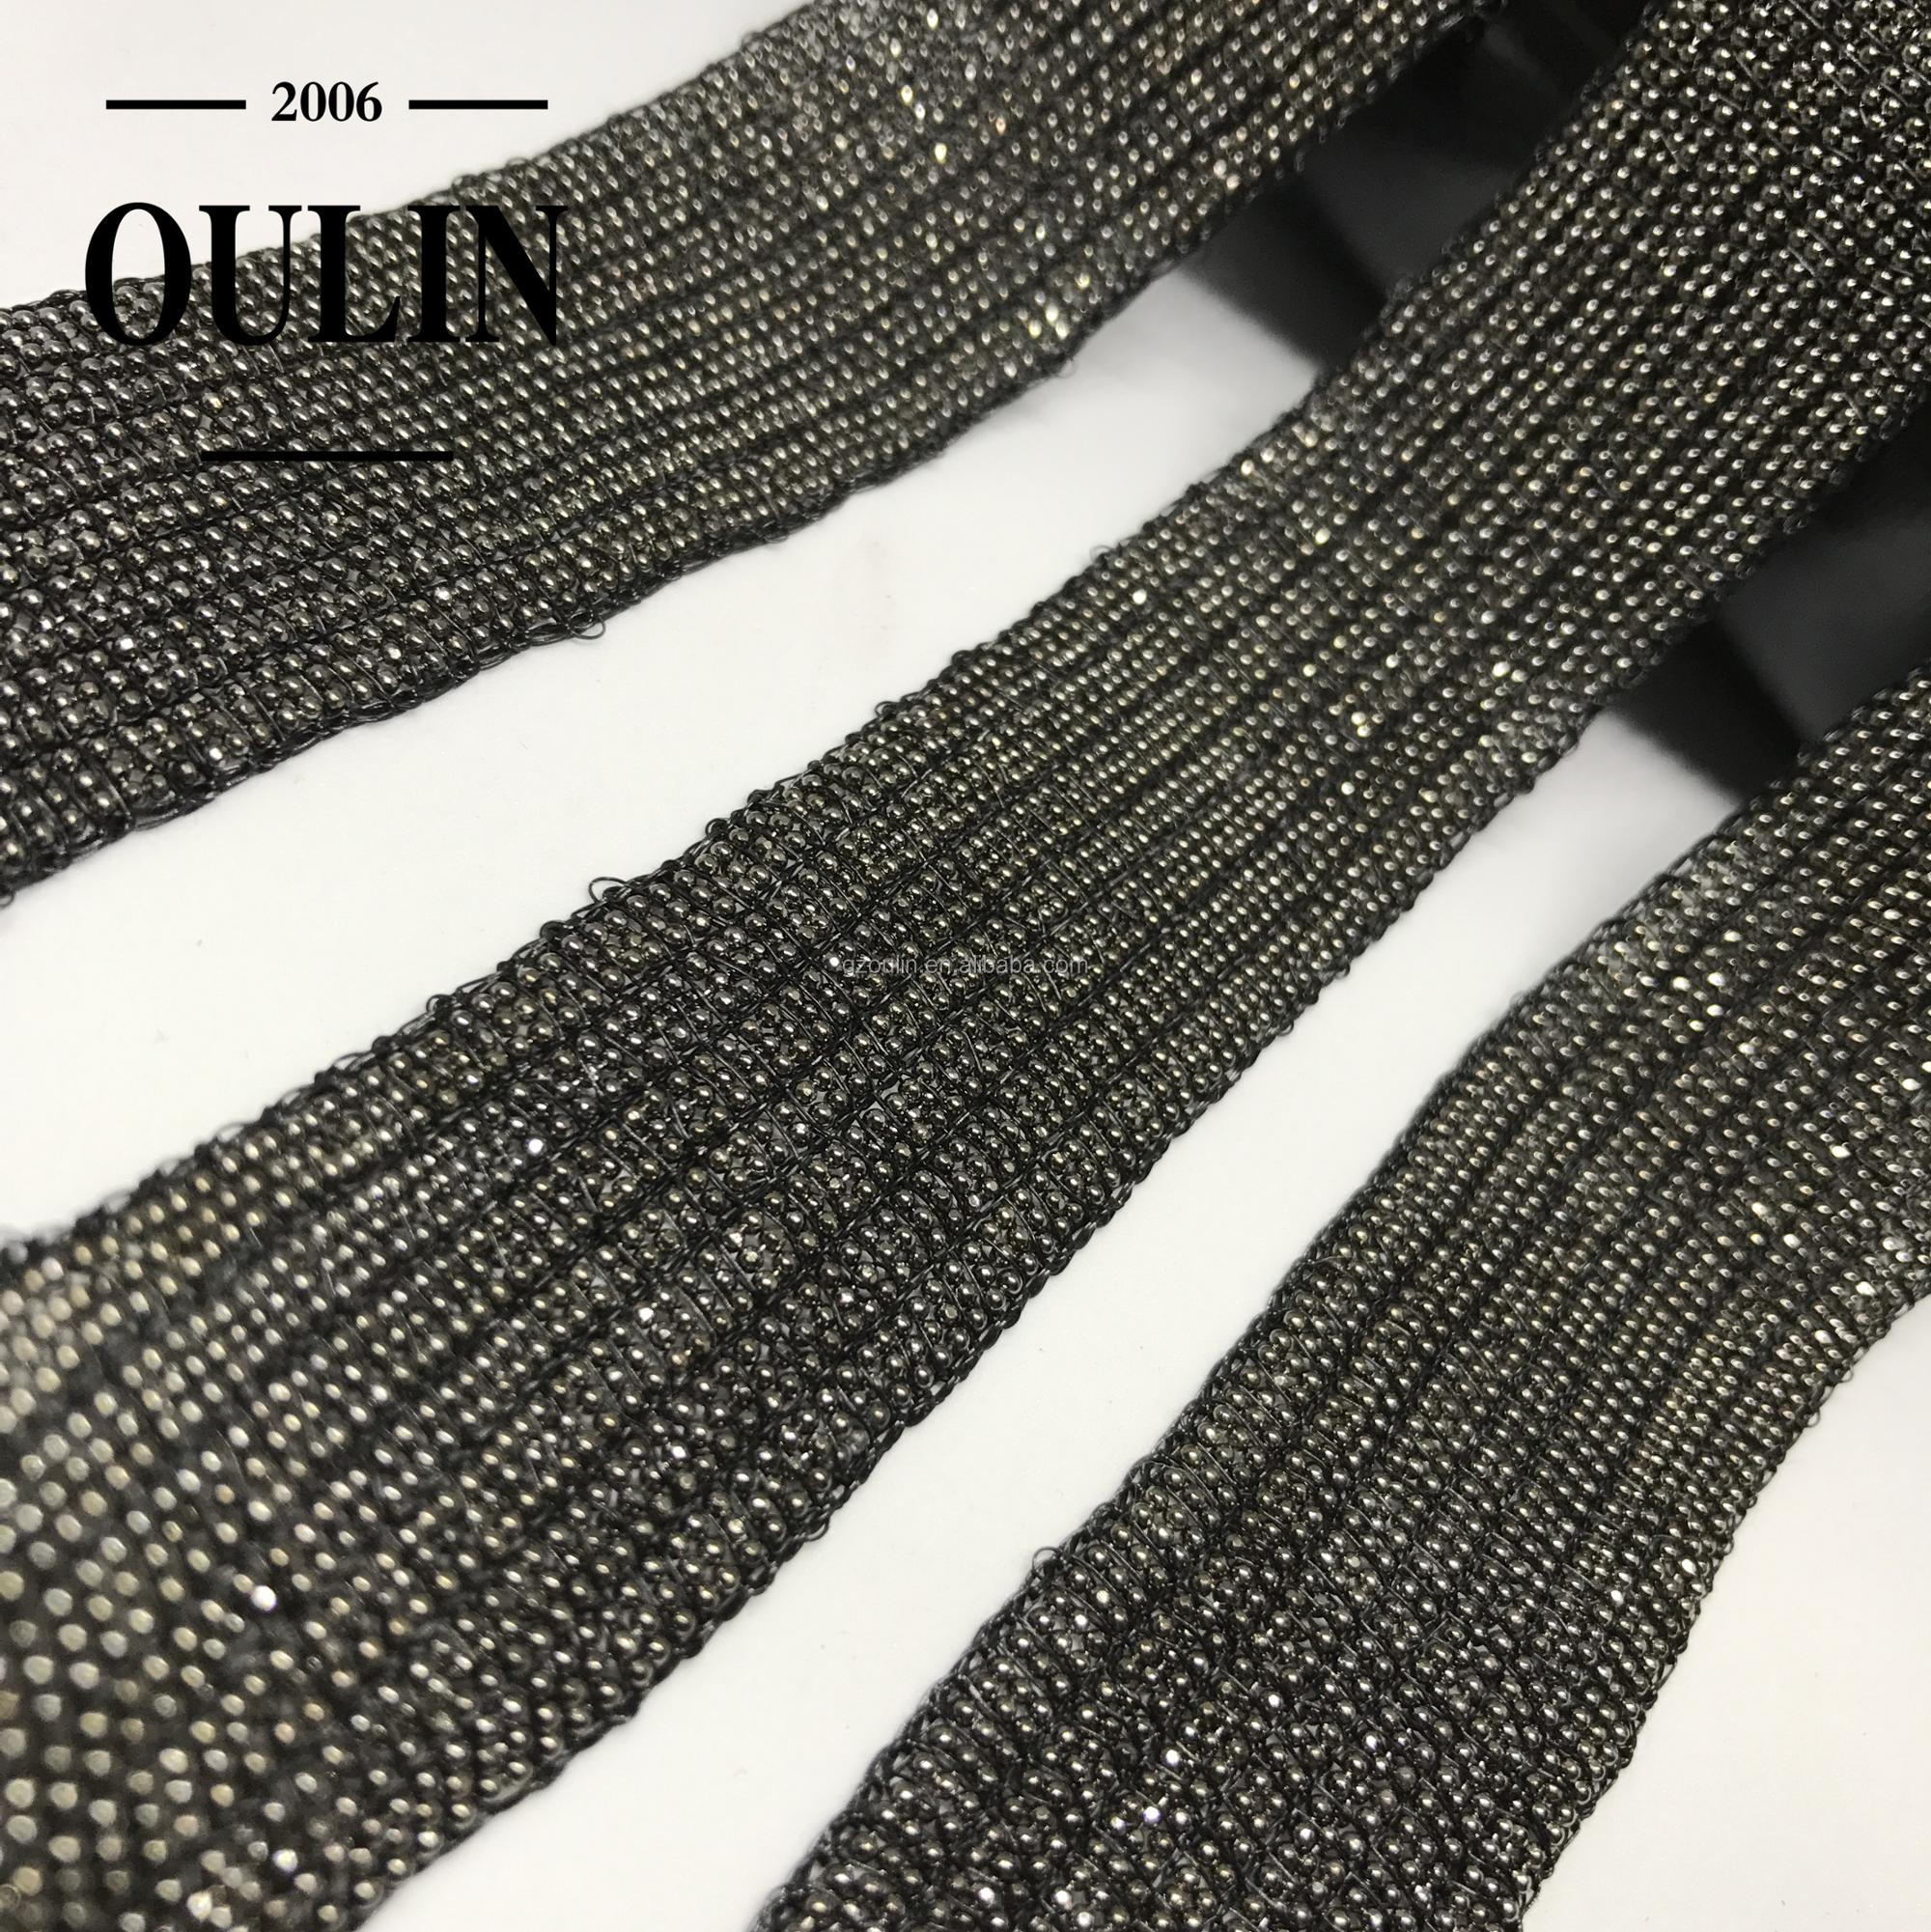 Chrome color ball chain lace trim gun metal color chain trims for garments size can be customized trimmings